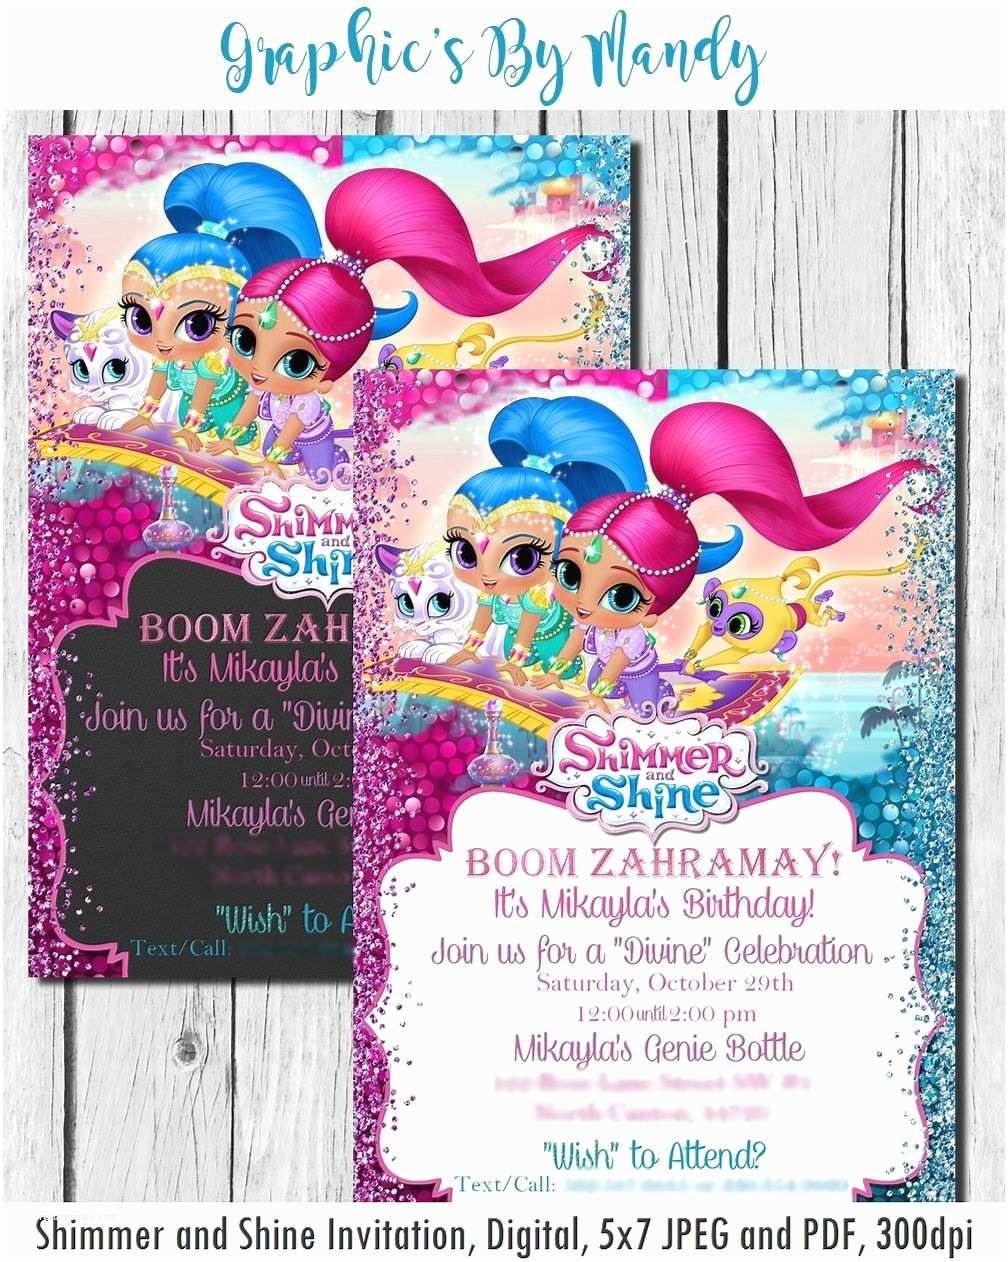 Shimmer and Shine Party Invitations Shimmer and Shine Birthday Invitation